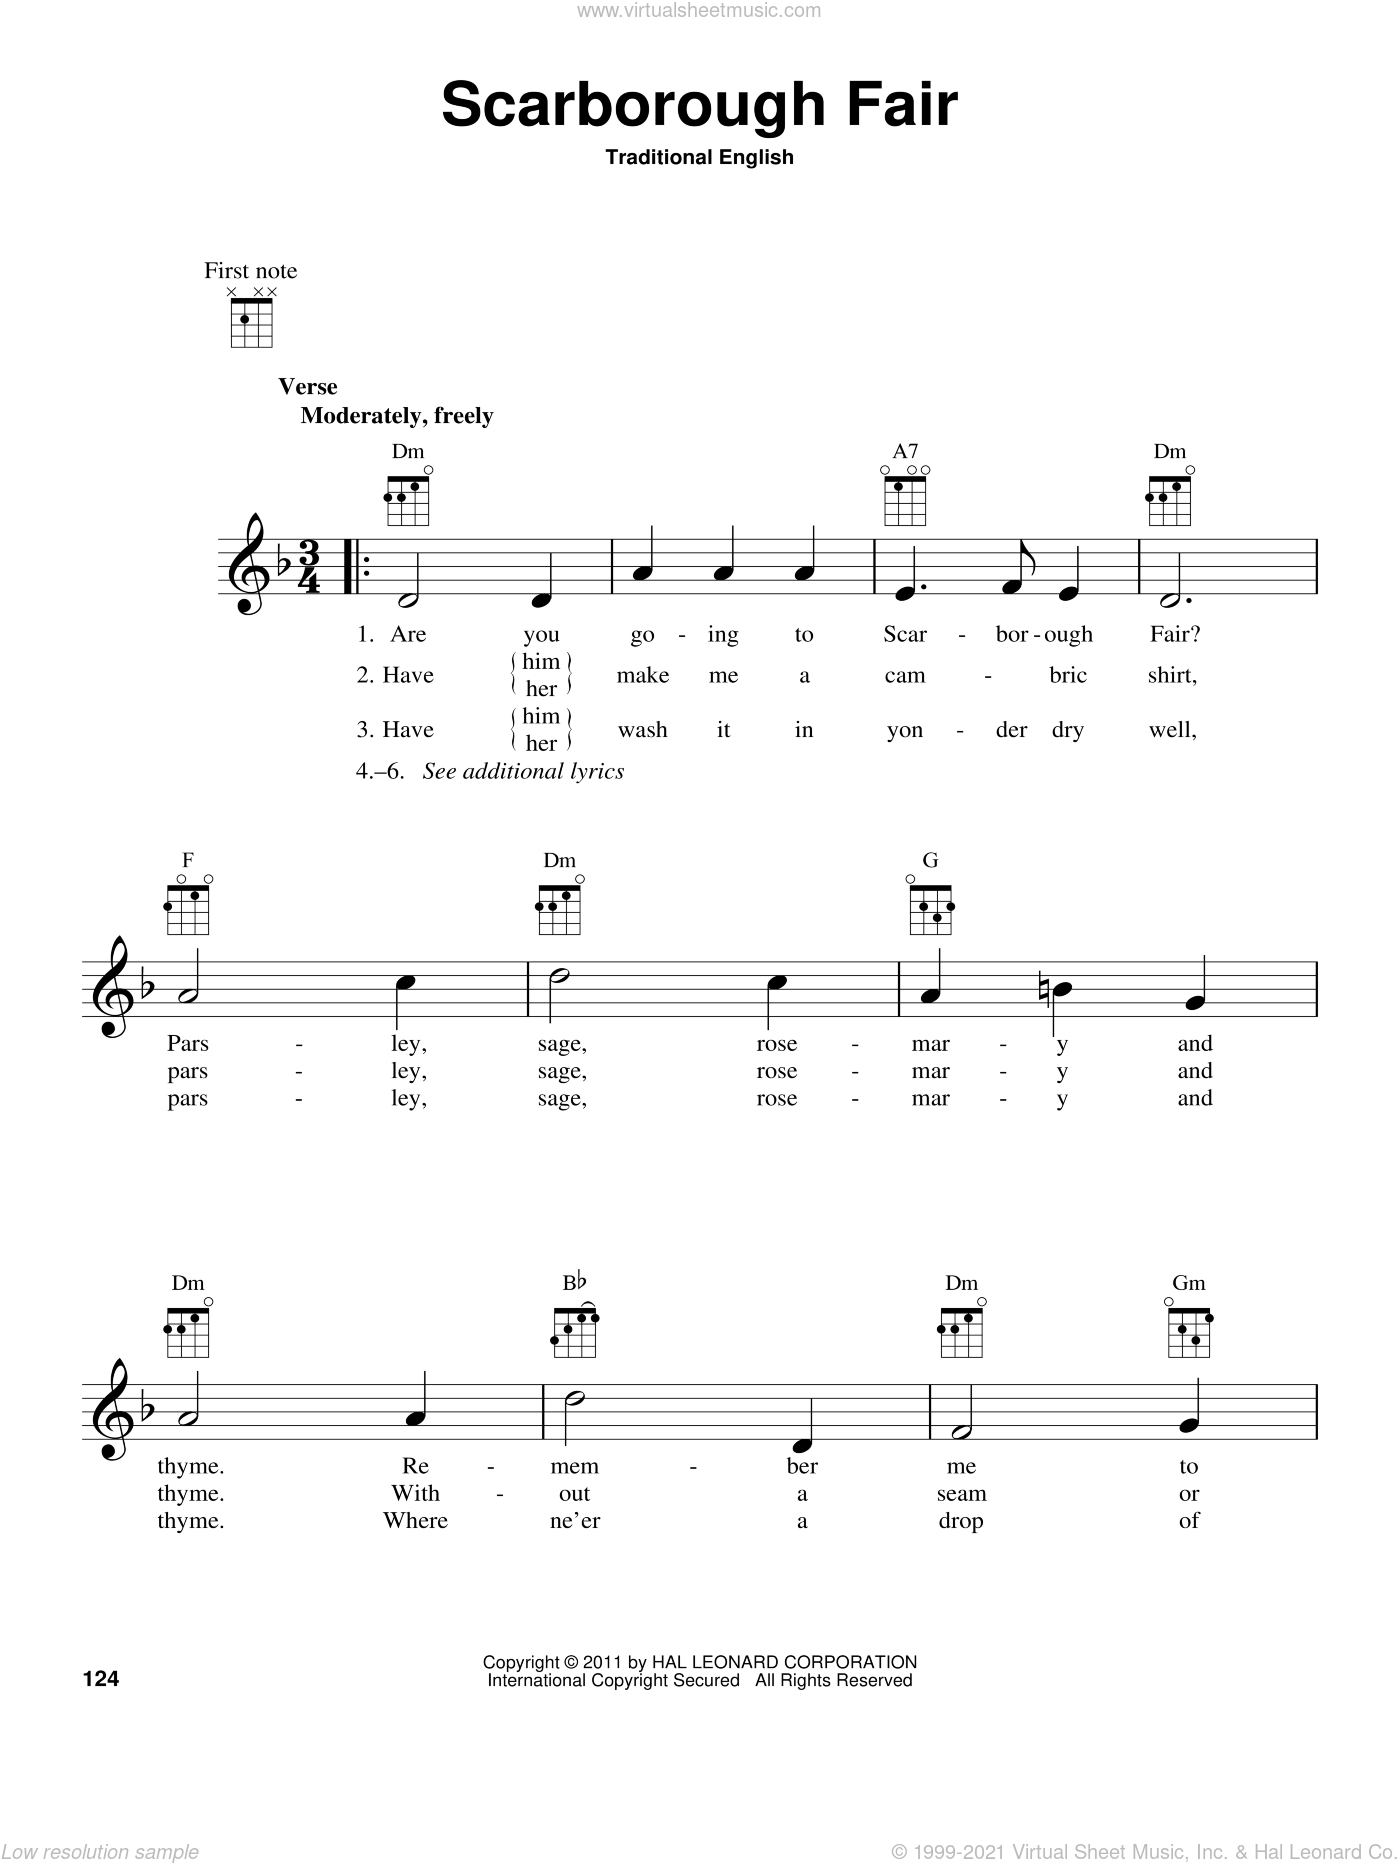 Scarborough Fair sheet music for ukulele